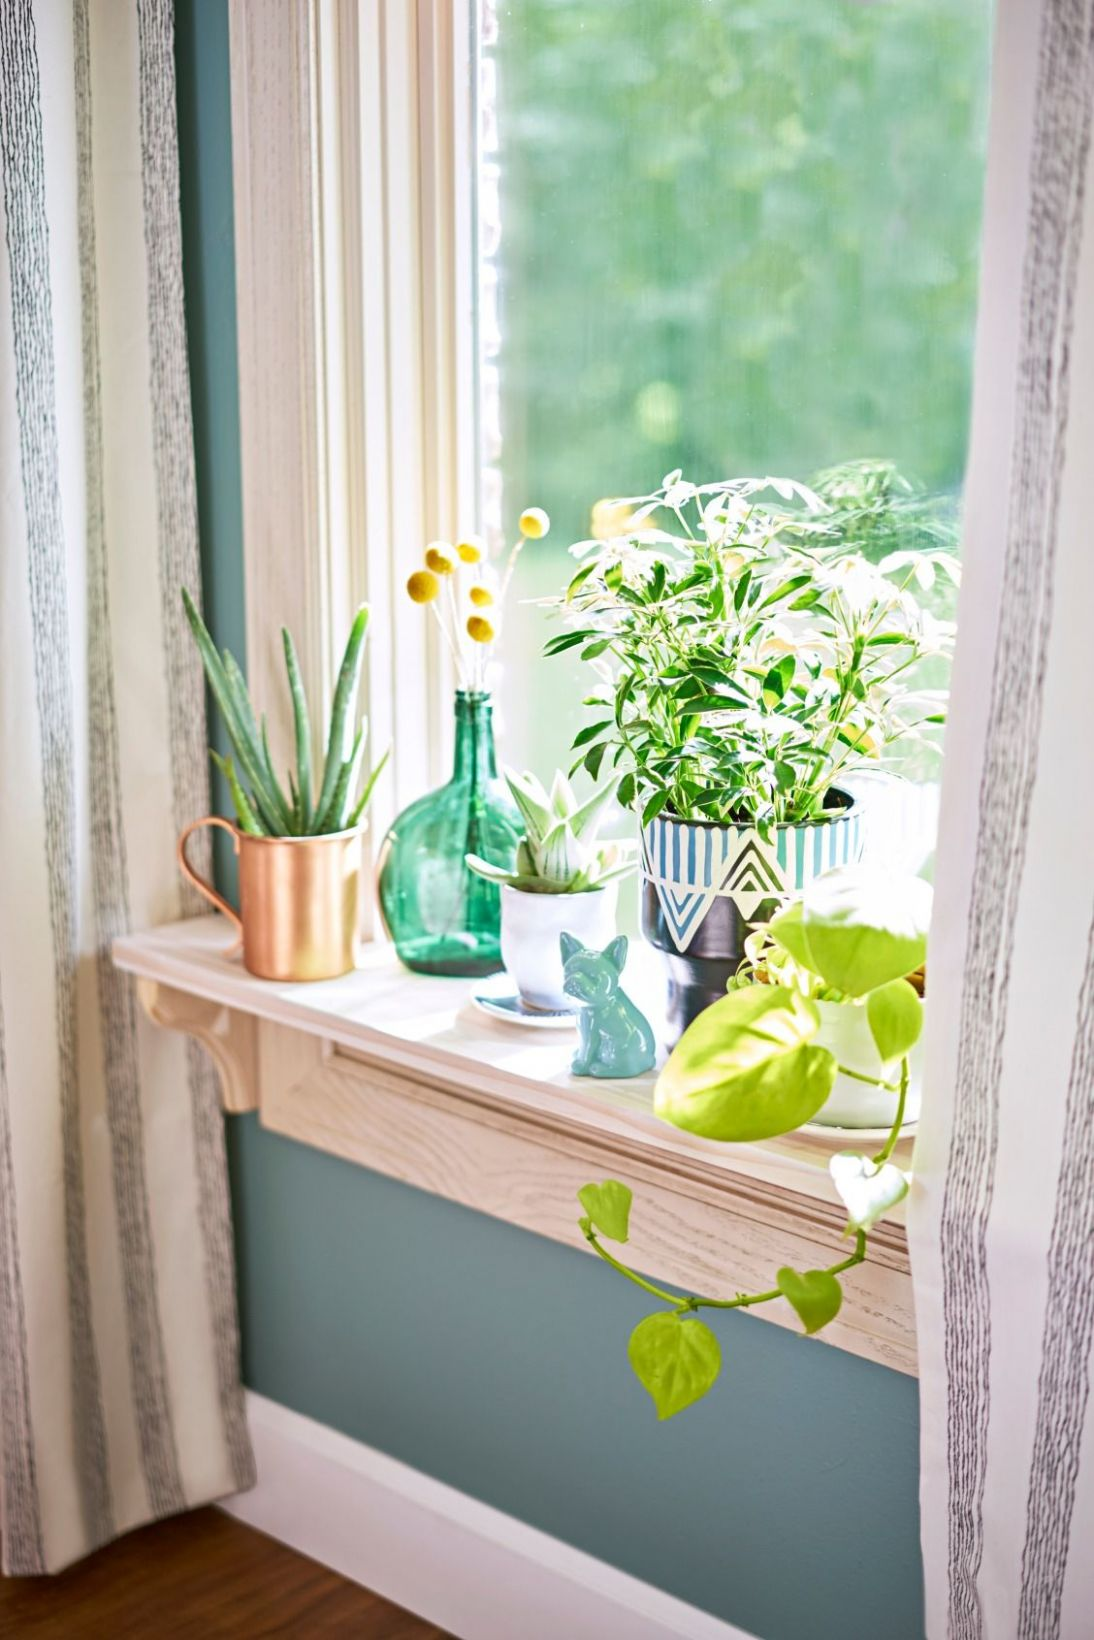 Bring the outdoors in! A windowsill is the perfect spot for a mini ..